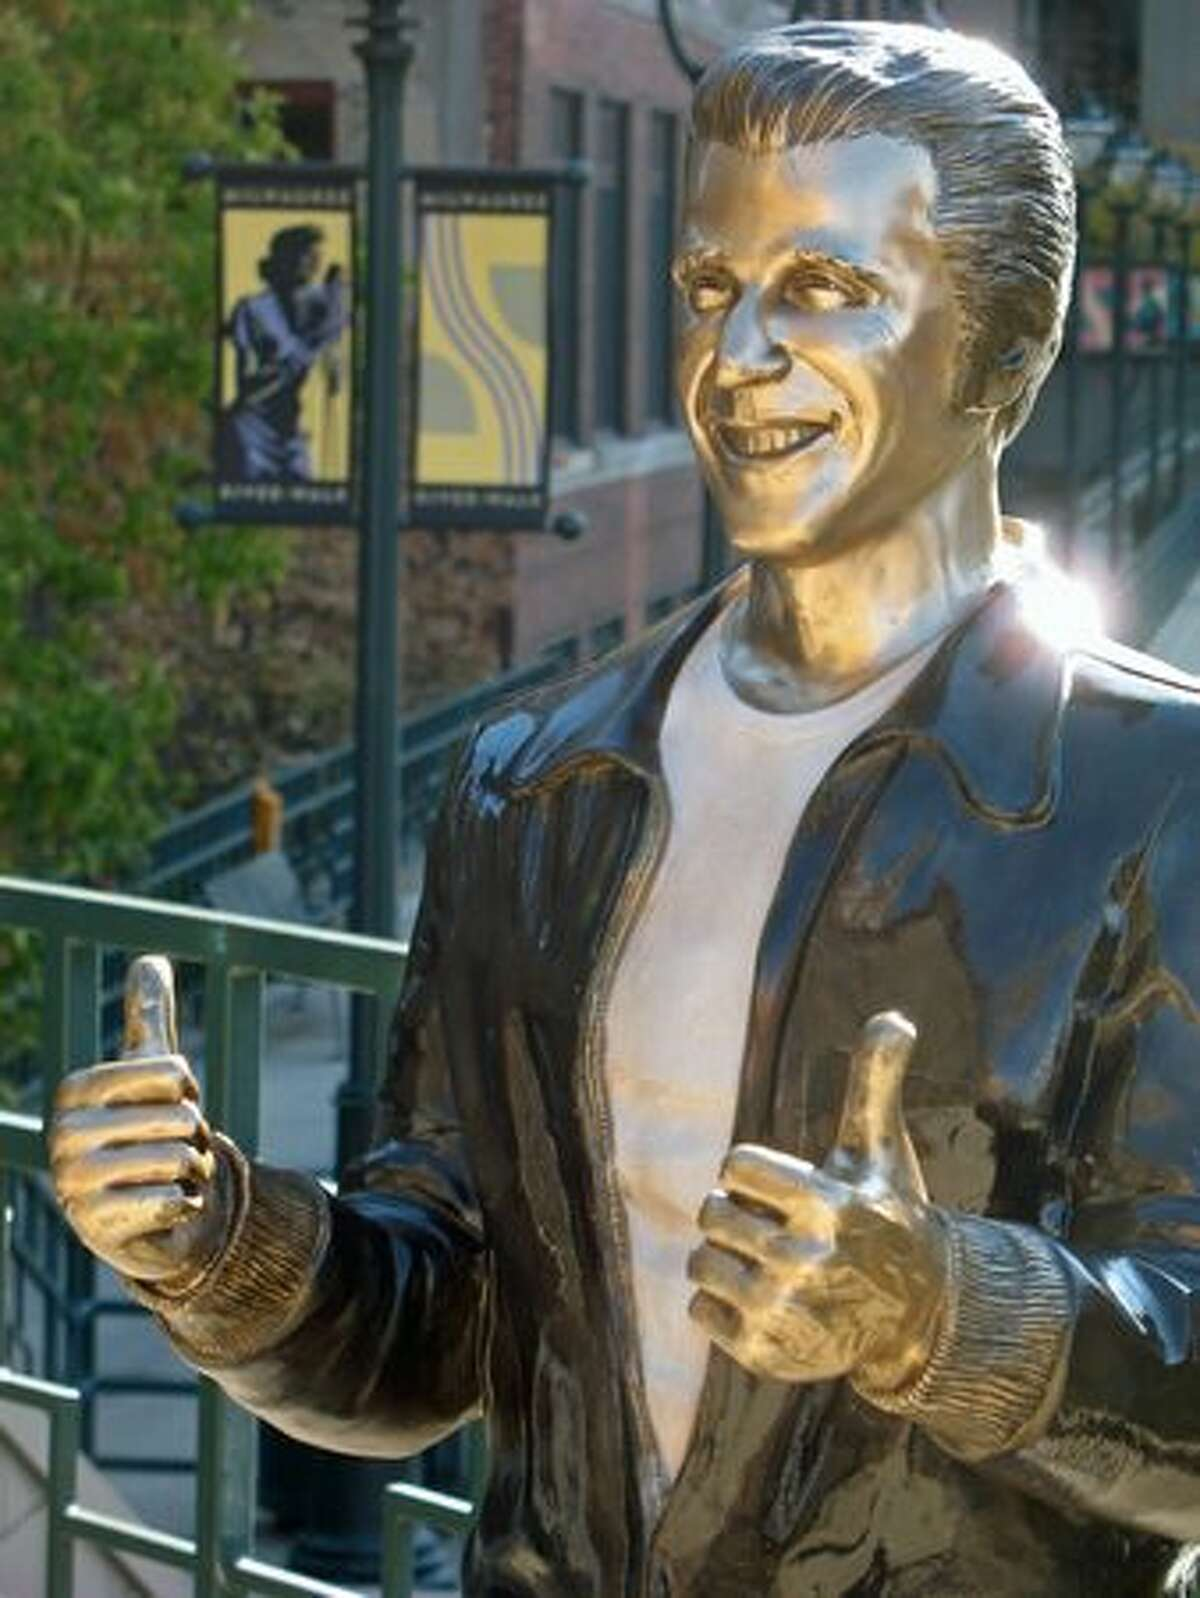 A statue of Fonzie, Henry Winkler's cool character from